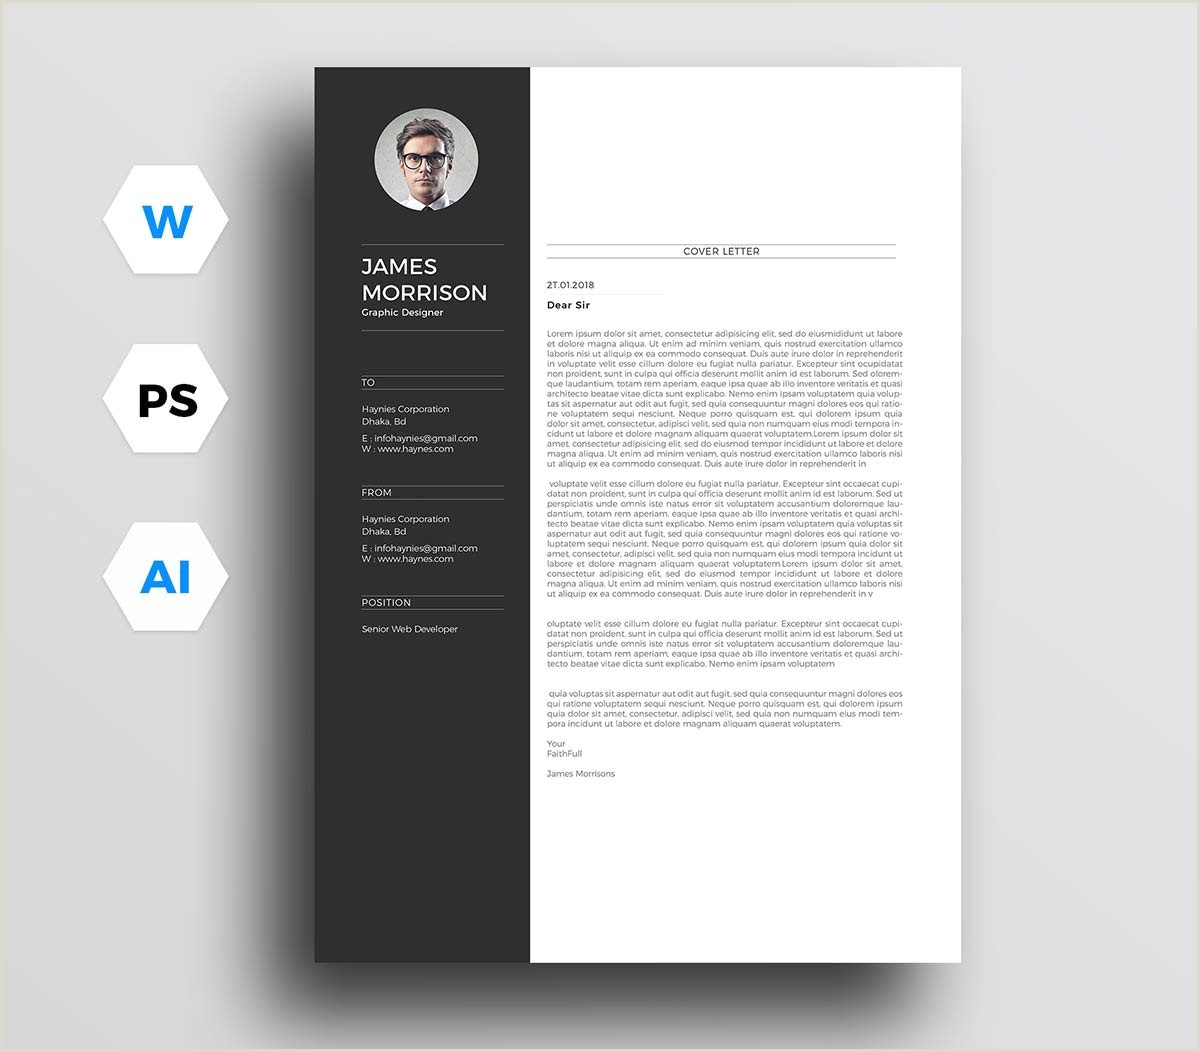 Cv format for Job In Ms Word Bangladesh Free Cover Letter Templates for Microsoft Word at Template